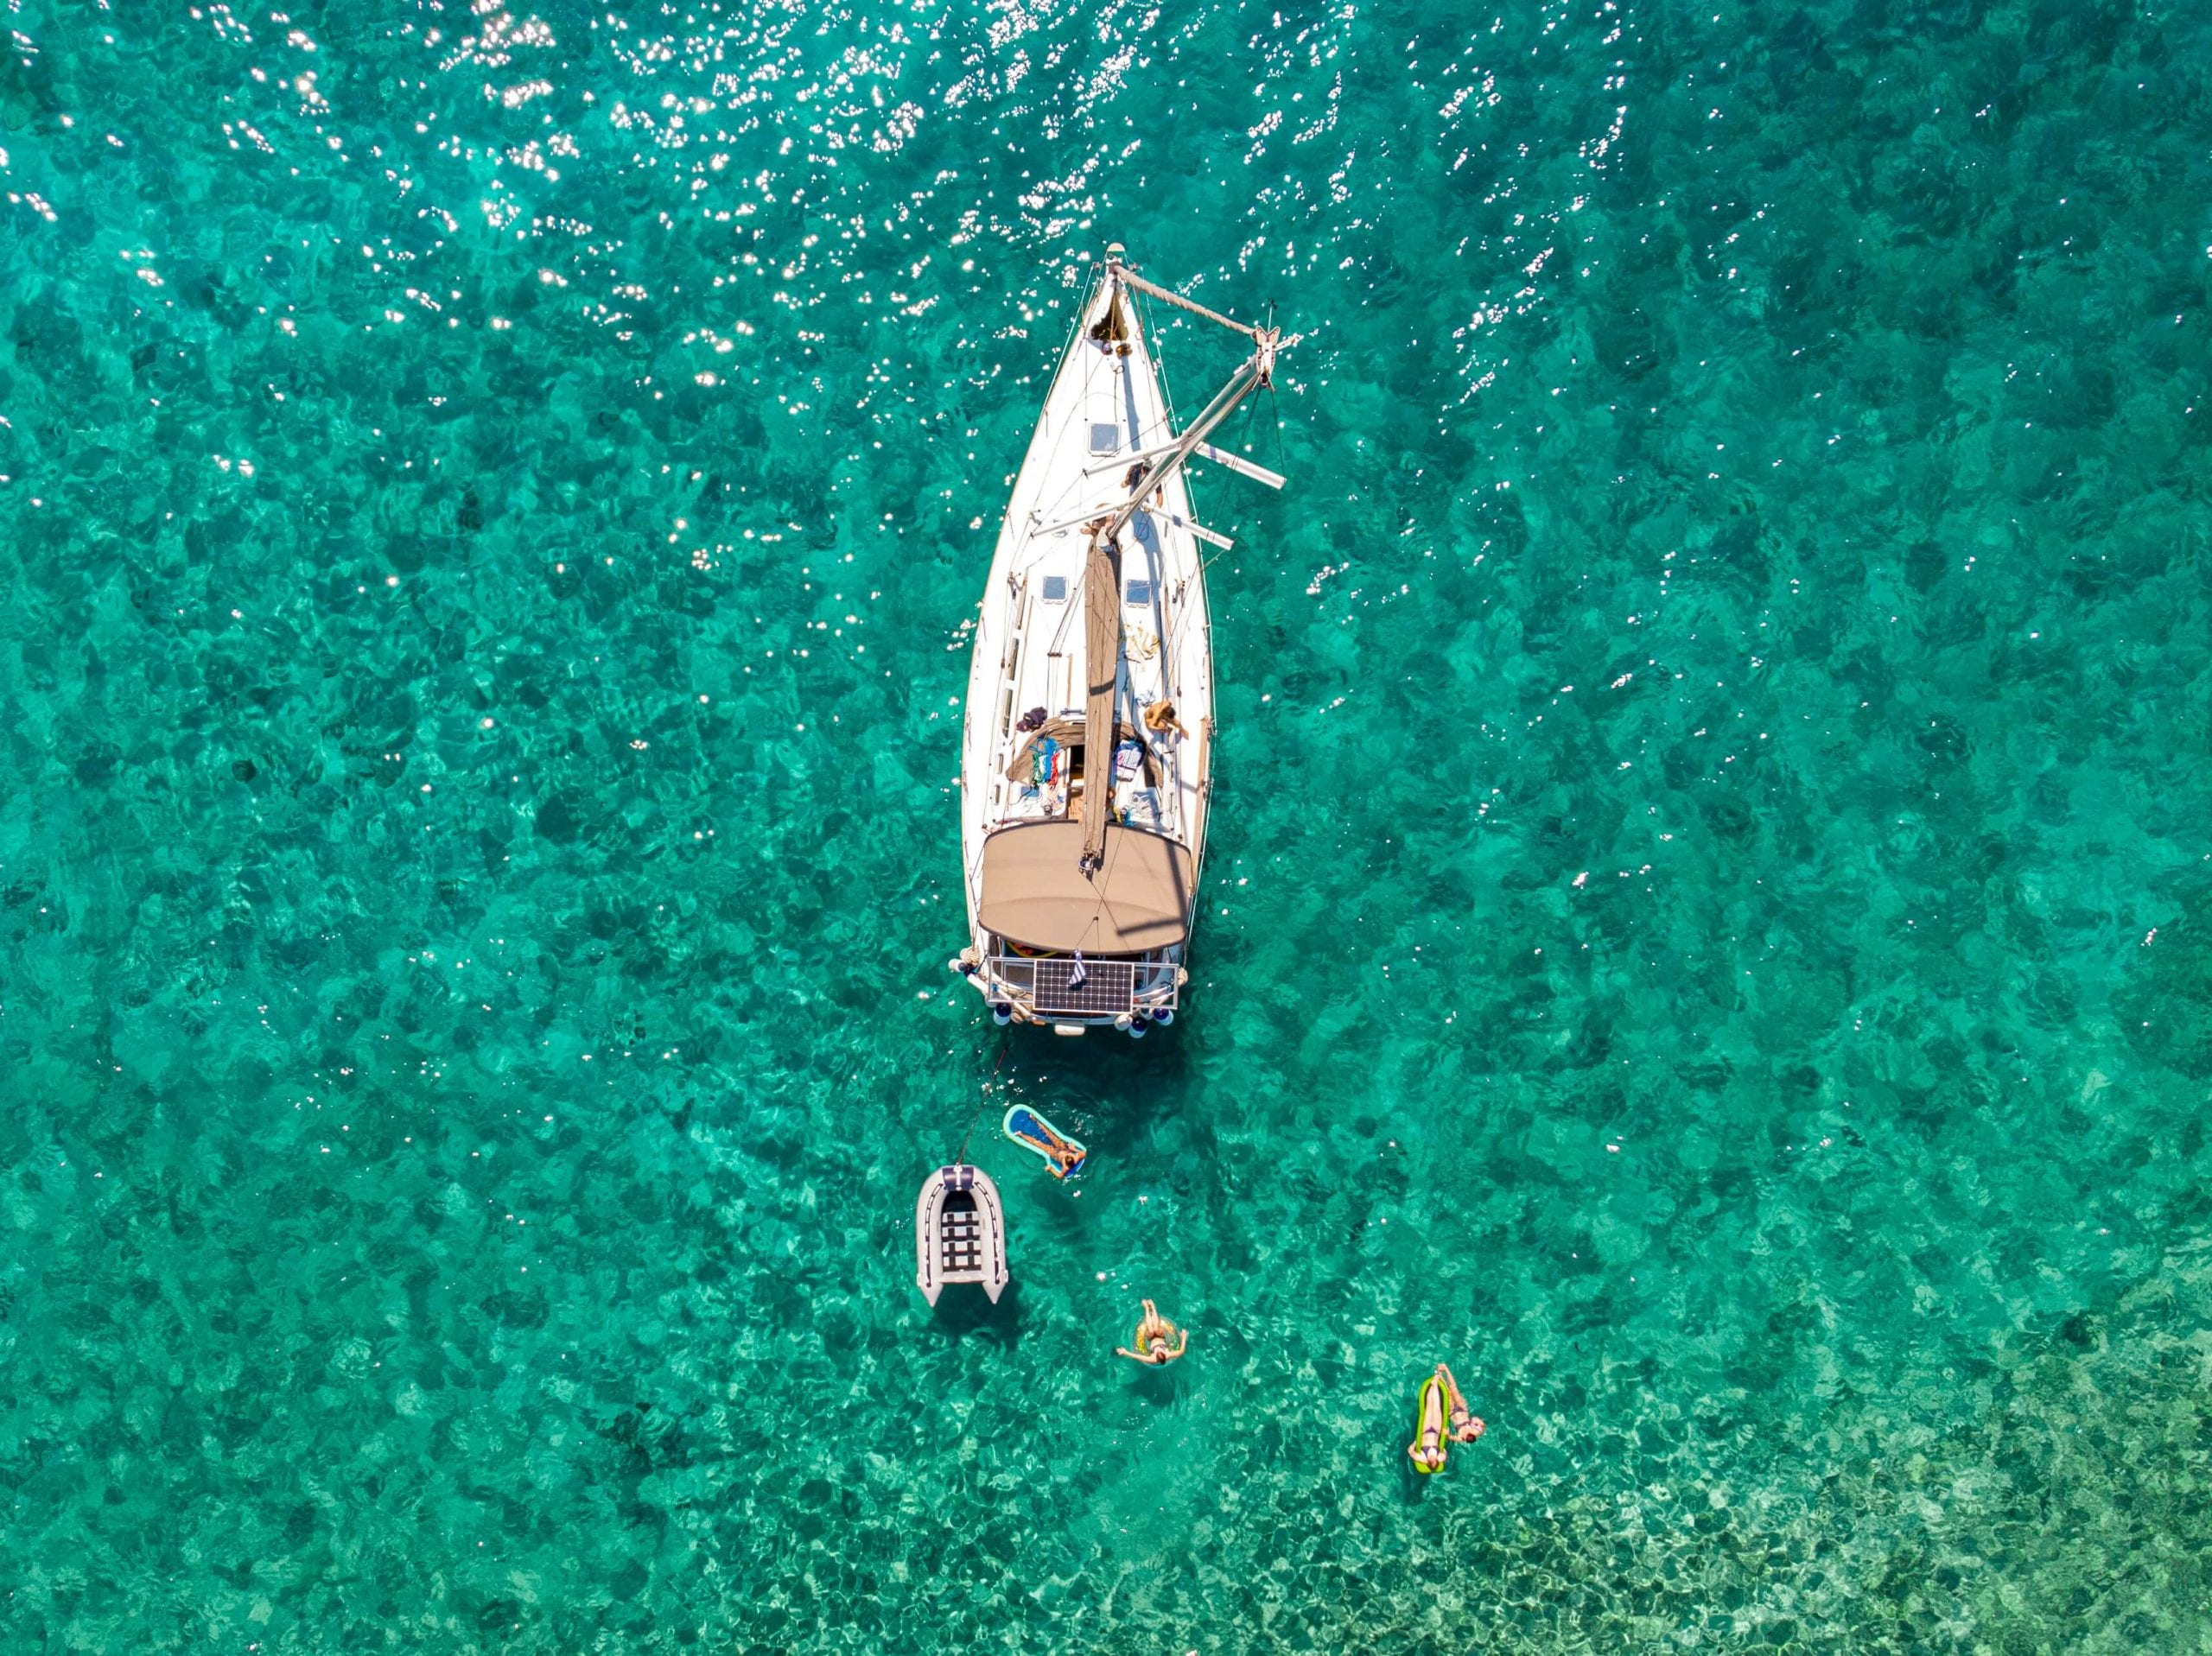 View of a sailing boat from above